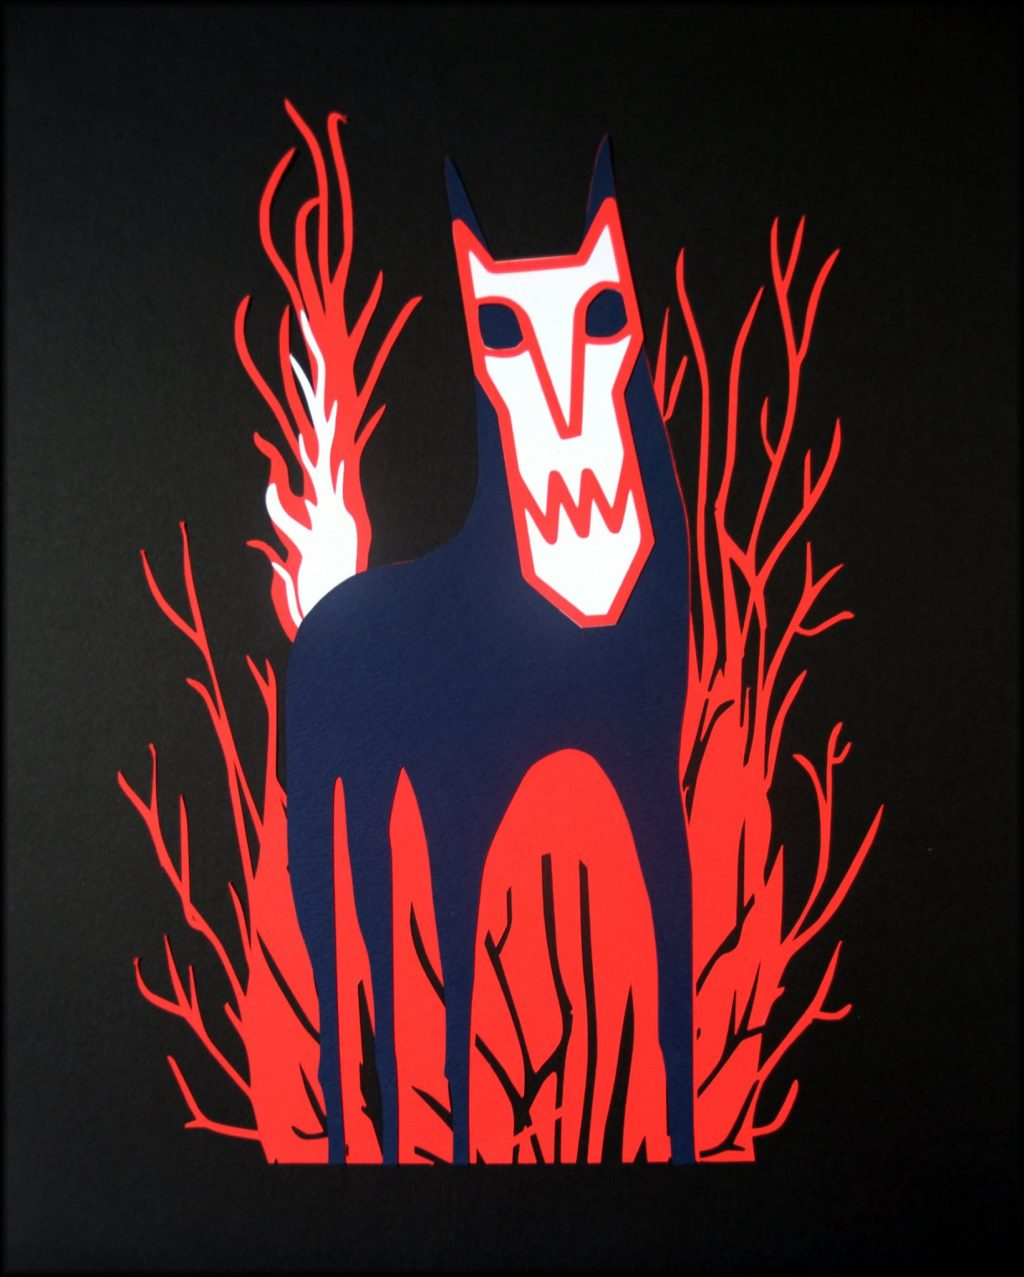 Paper cut art of The Wolf from the Red Riding Hood story. The wolf appears to be wearing a mask and is standing against a background of a forest.